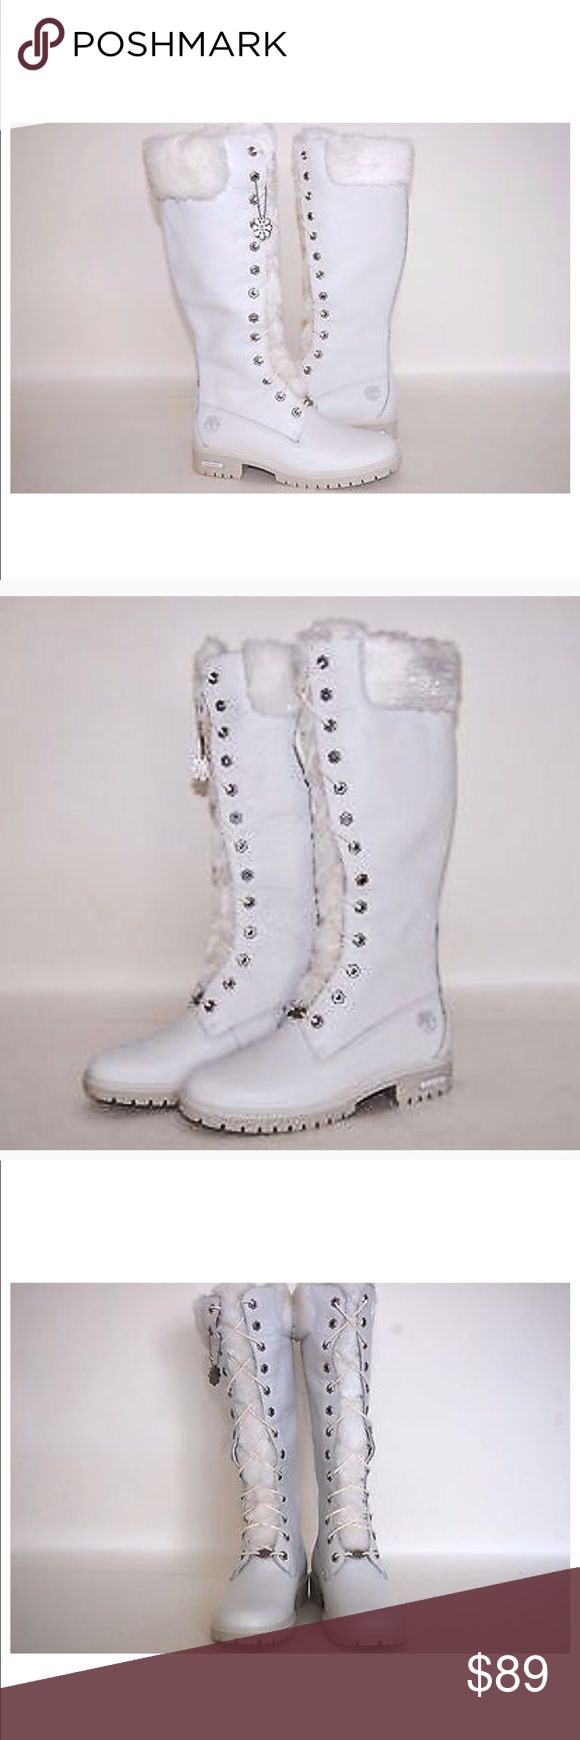 """Timberland 14"""" White Pebble Leather Winter Boots Good preowned condition  Make a statement with these white pebble leather knee high boots that are topped with flecks of iridescent sparkle in faux fur!  14"""" tall  Heel height 1 1/2"""" Size 8 ( run about 1/2 size Small) Timberland Shoes Winter & Rain Boots"""